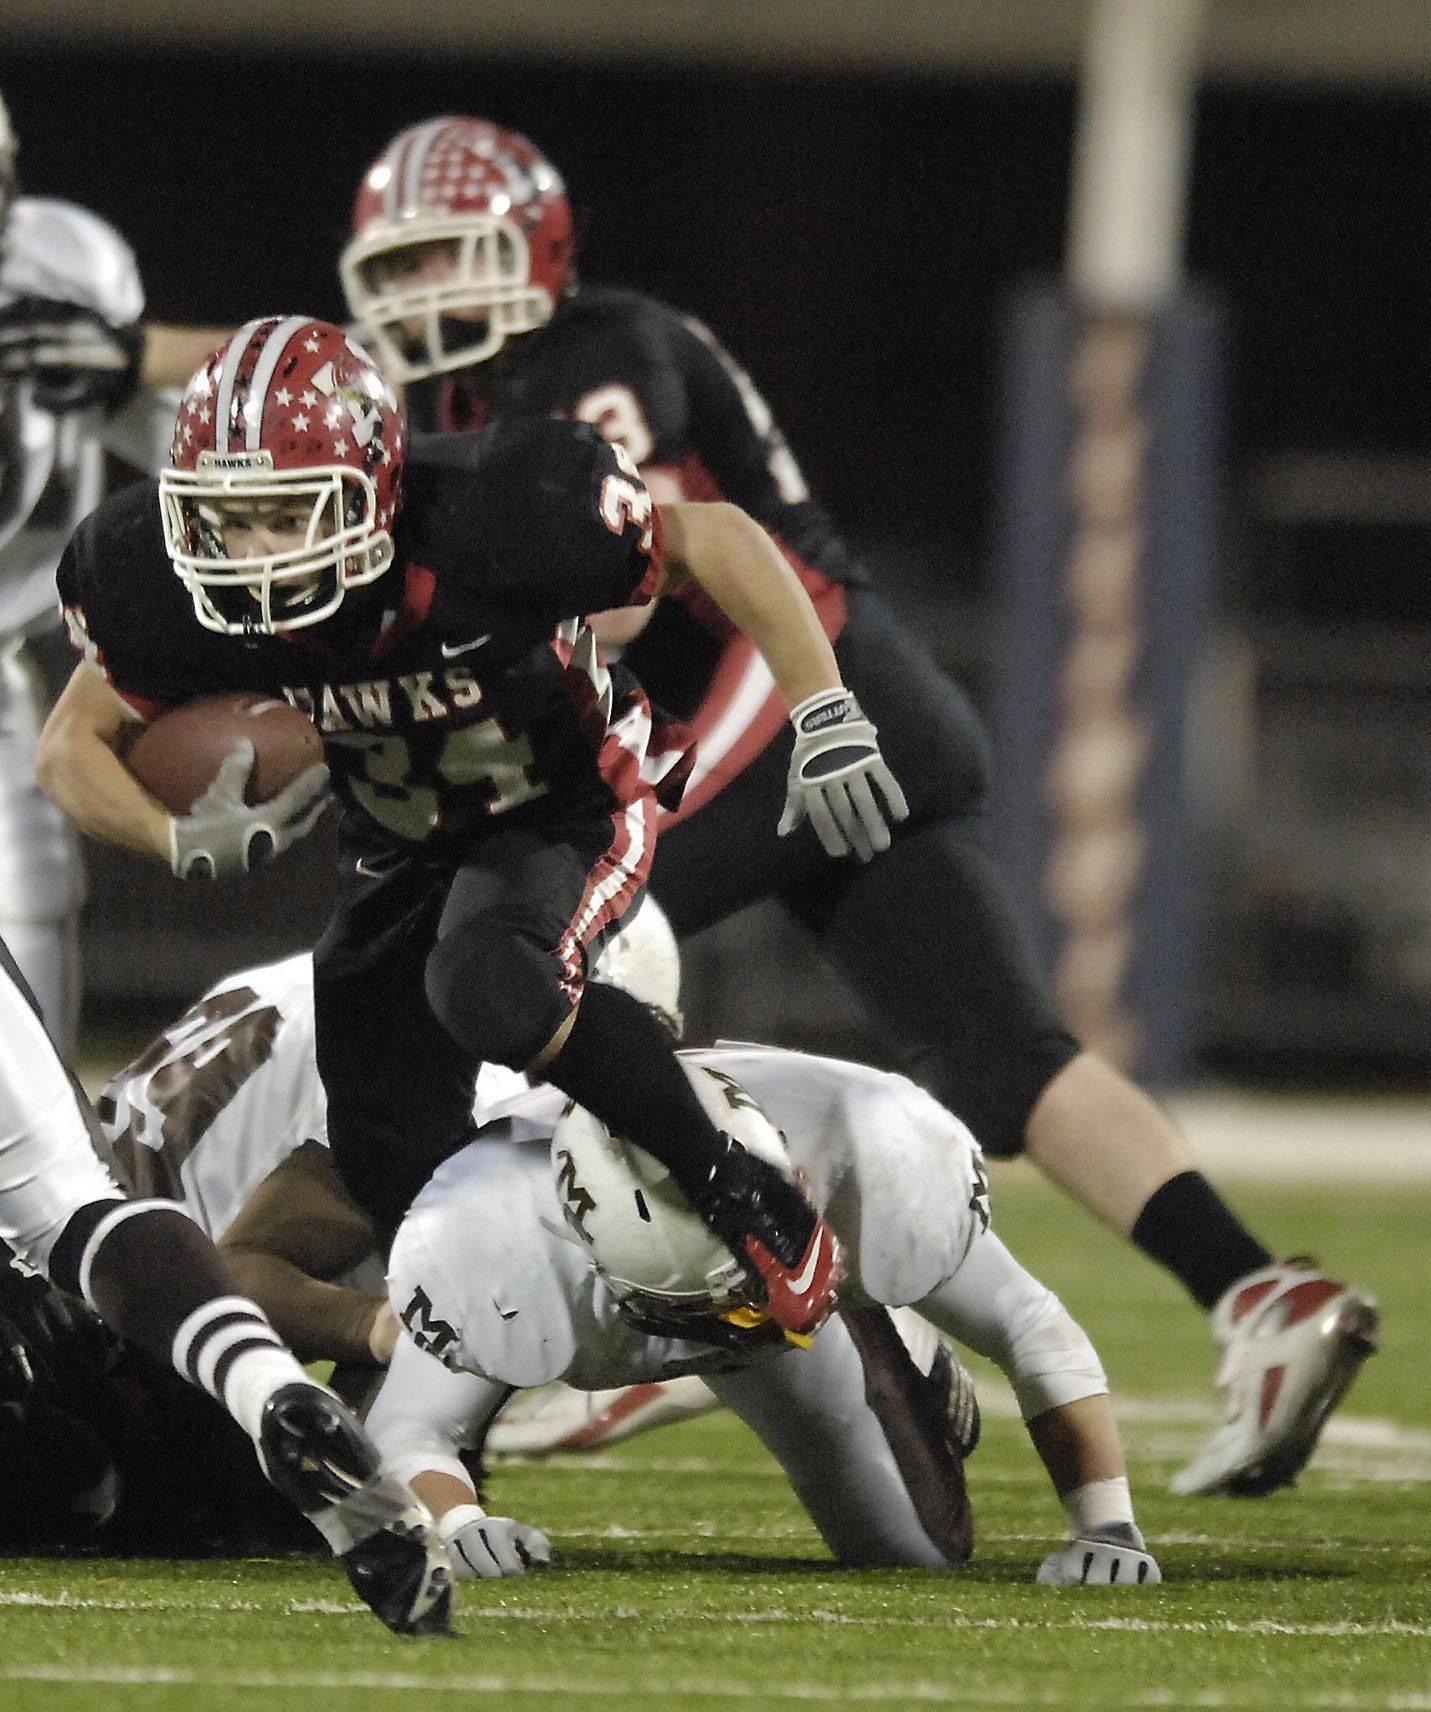 Maine South's Paul Preston runs over a Mt. Carmel defender during the Class 8A state final in Champaign Saturday.